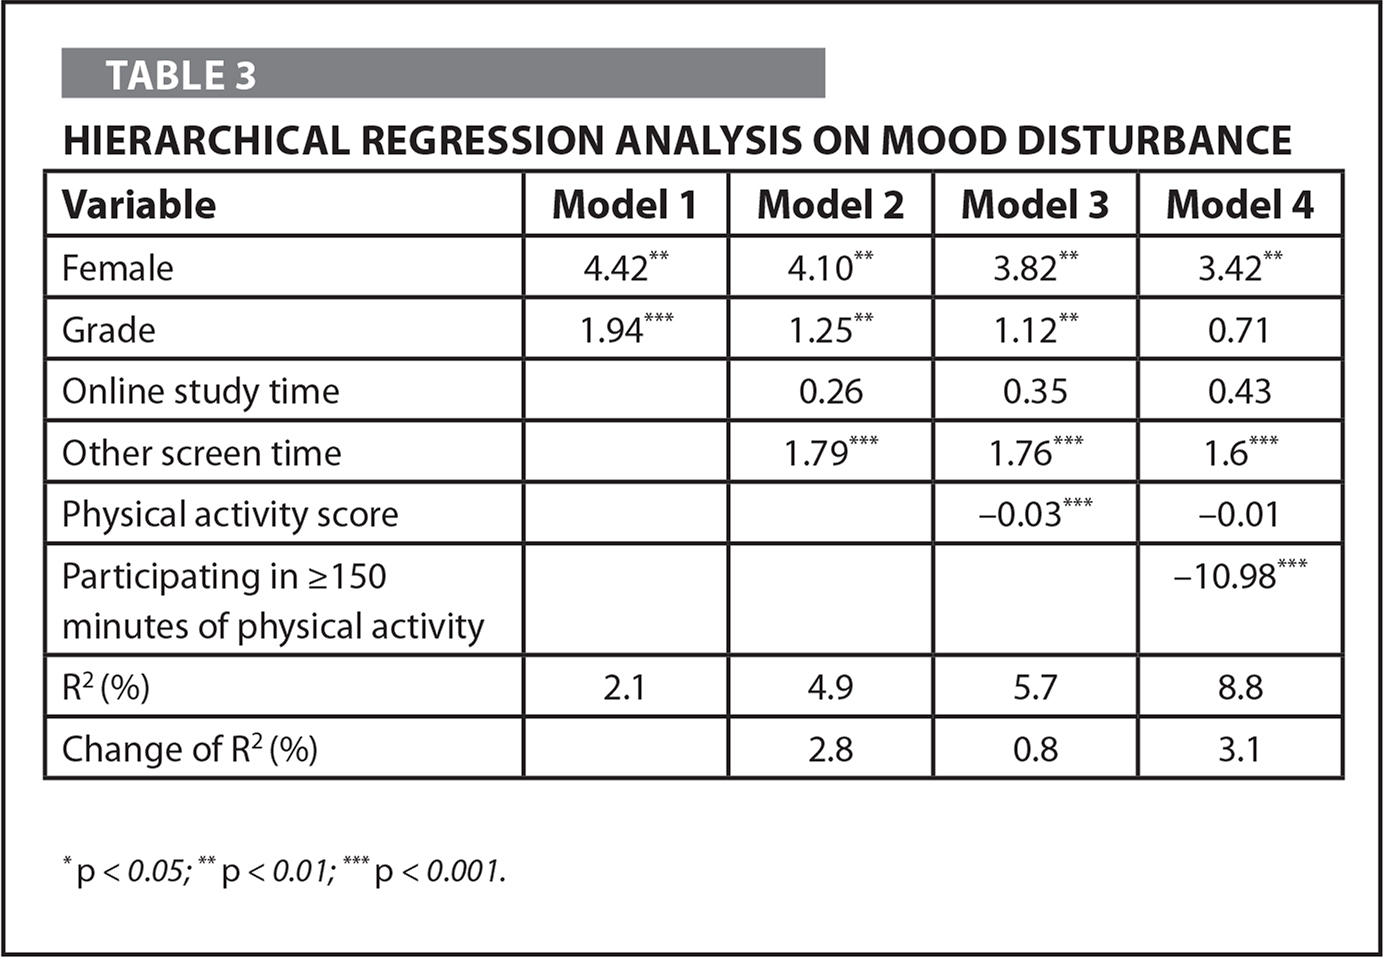 Hierarchical Regression Analysis on Mood Disturbance